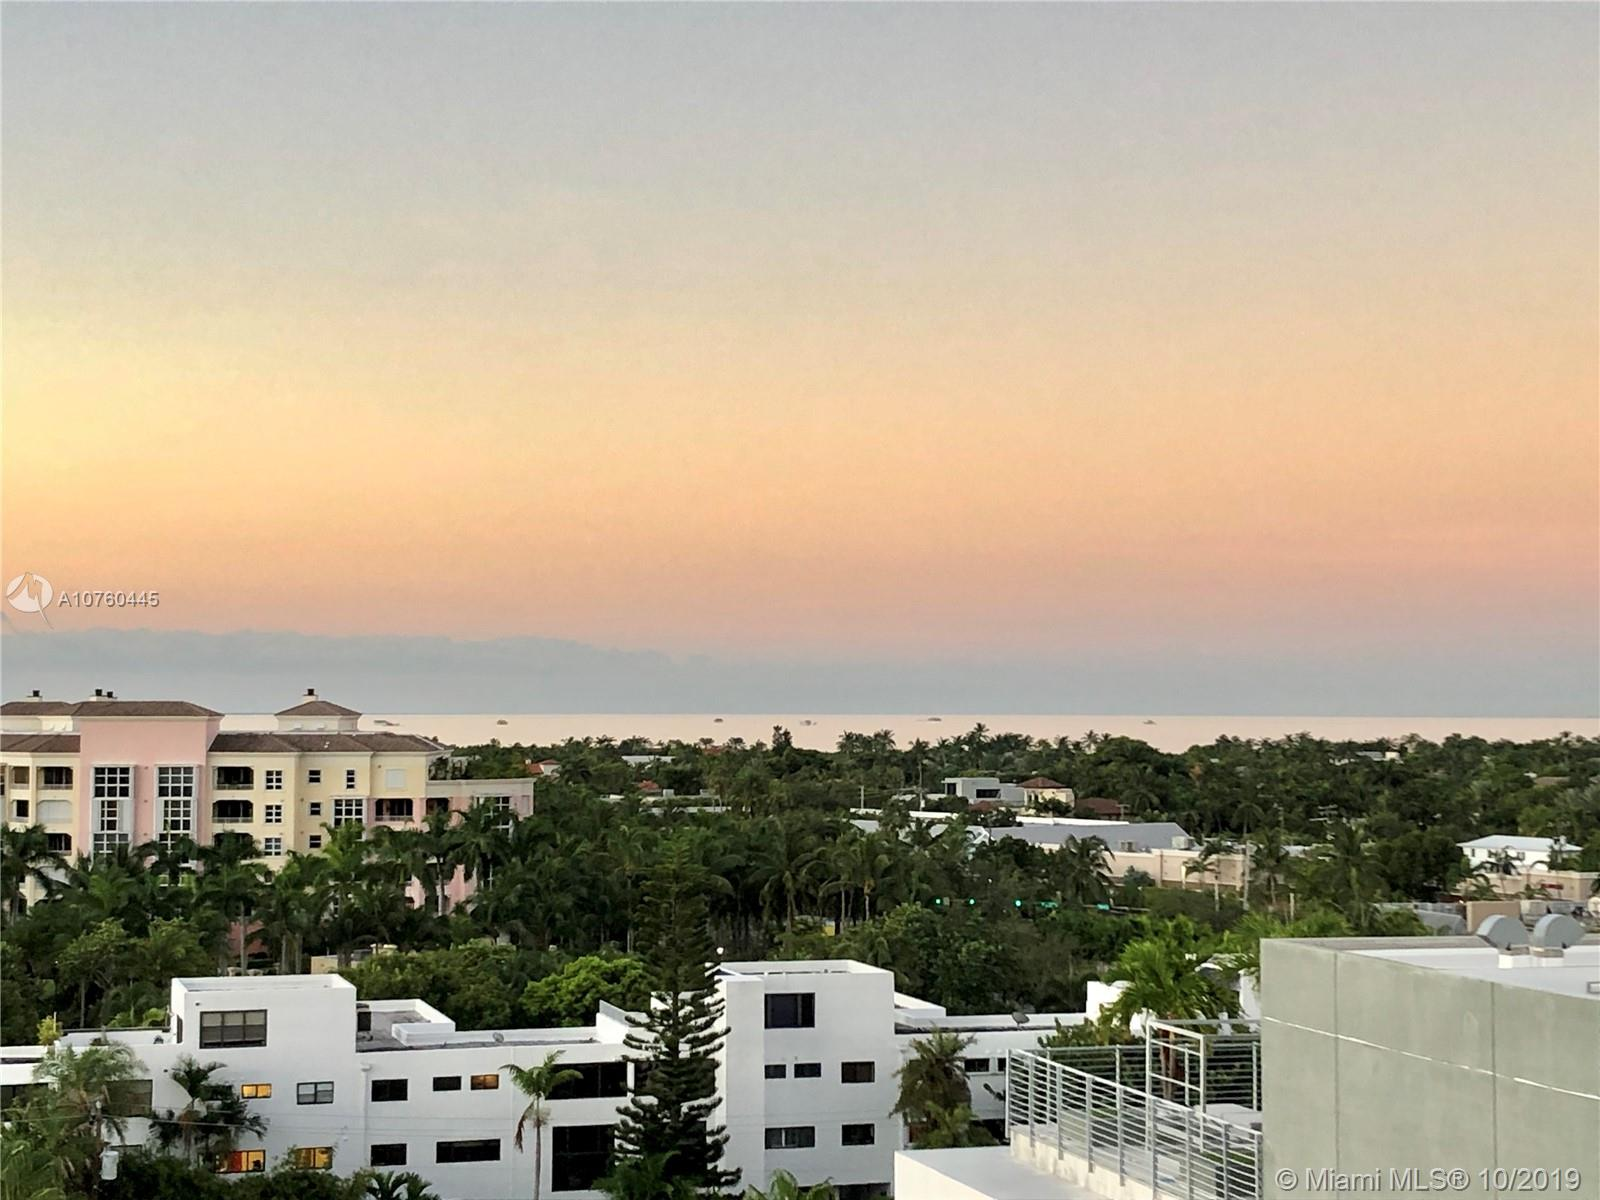 REDUCED!!! Gorgeous views from this updated 1 bedroom, 1.5 bathroom 1013sf condo on the top floor of the Key Biscayne Ambassador! Very low maintenance fee!! Bright and modern unit with ceramic tile throughout. The kitchen was moved to make a second room. Large balcony to enjoy the beautiful views. Walk-in closet, 2 assigned parking spaces (1 covered close to entrance and 1 not covered) with ample guest parking as well.  Laundry room on the same floor. The building was renovated a few years ago and has a gym, community room, heated pool with BBQ, bike storage, golf cart charger, car washing area, and private deeded beach access. Wonderful location steps from the beach, restaurants, shops, supermarket, Key Biscayne K-8 public school, Village Green, and Bill Baggs State Park.